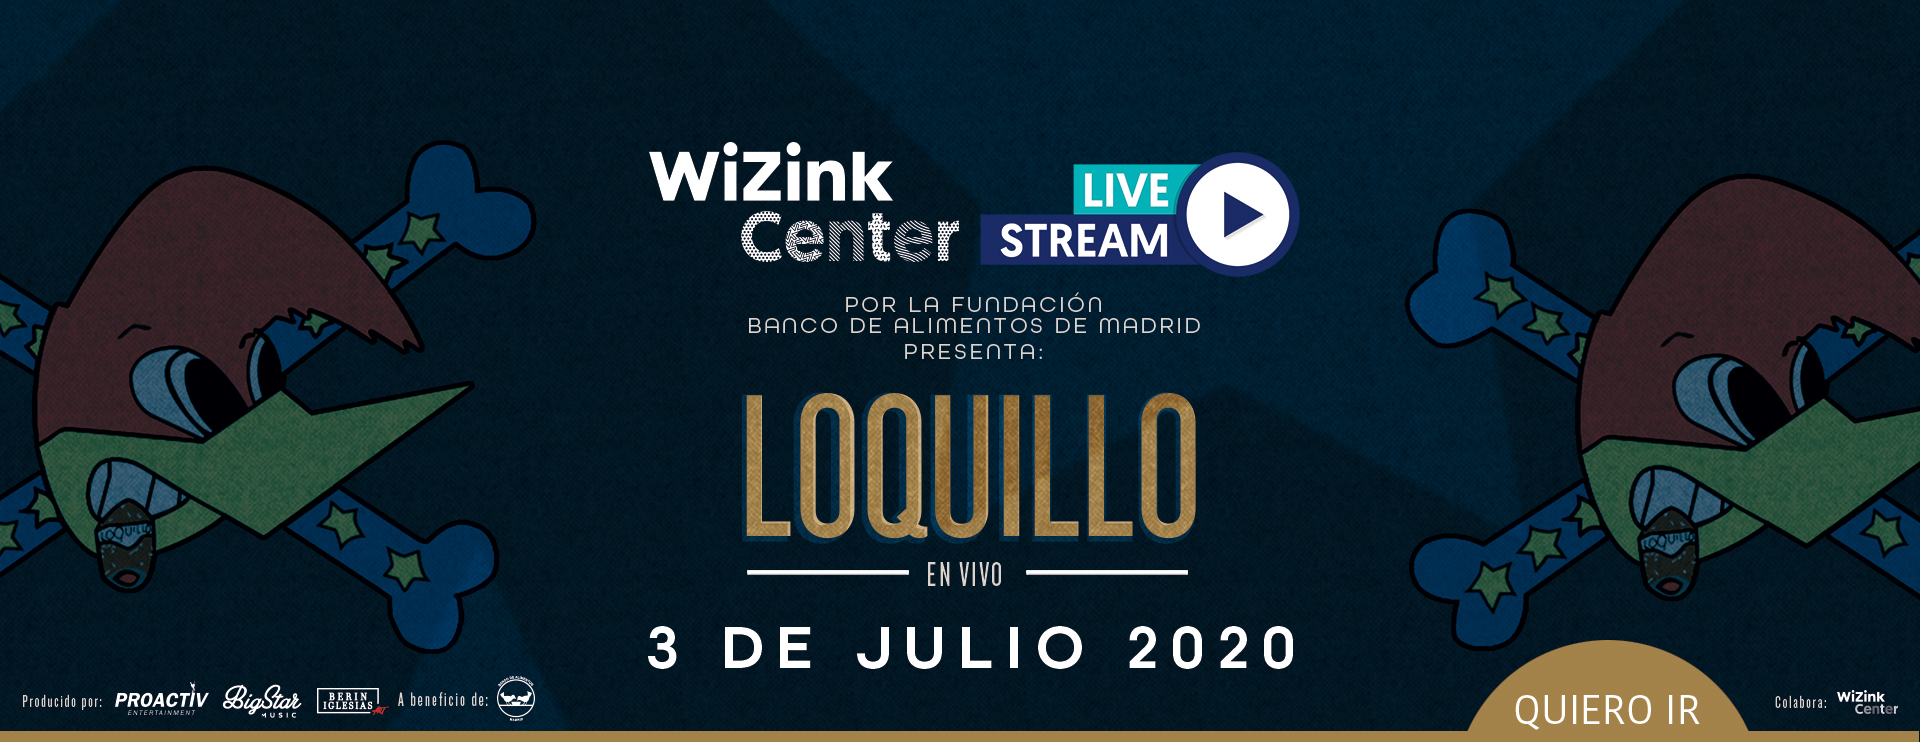 LOQUILLO WIZINK